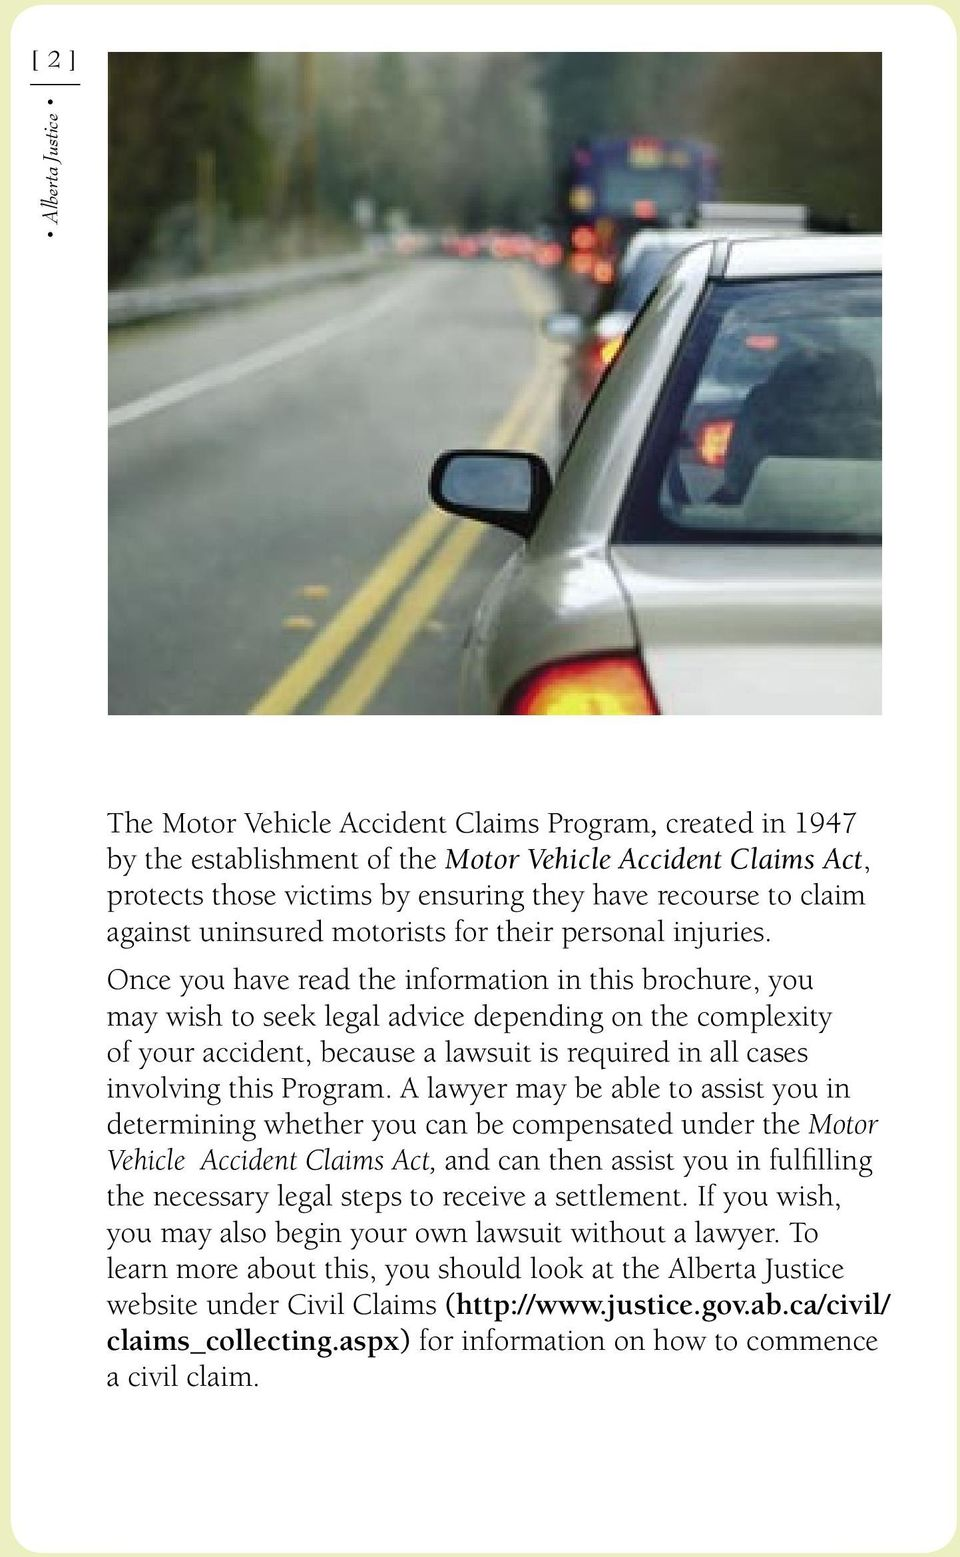 Once you have read the information in this brochure, you may wish to seek legal advice depending on the complexity of your accident, because a lawsuit is required in all cases involving this Program.